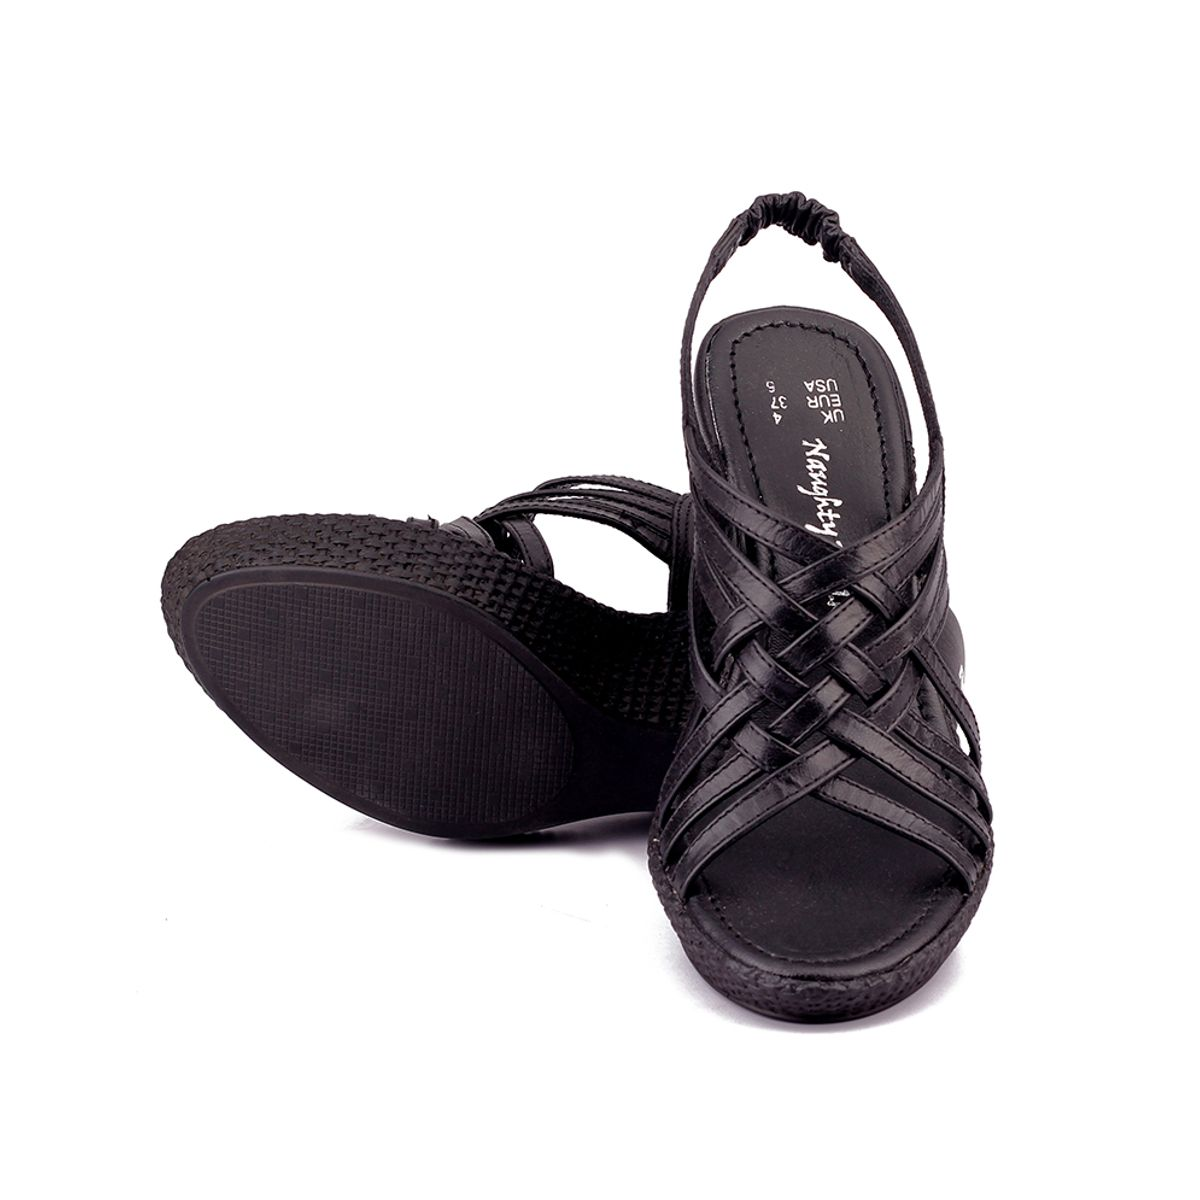 Naughty Walk-706 Black Wedges